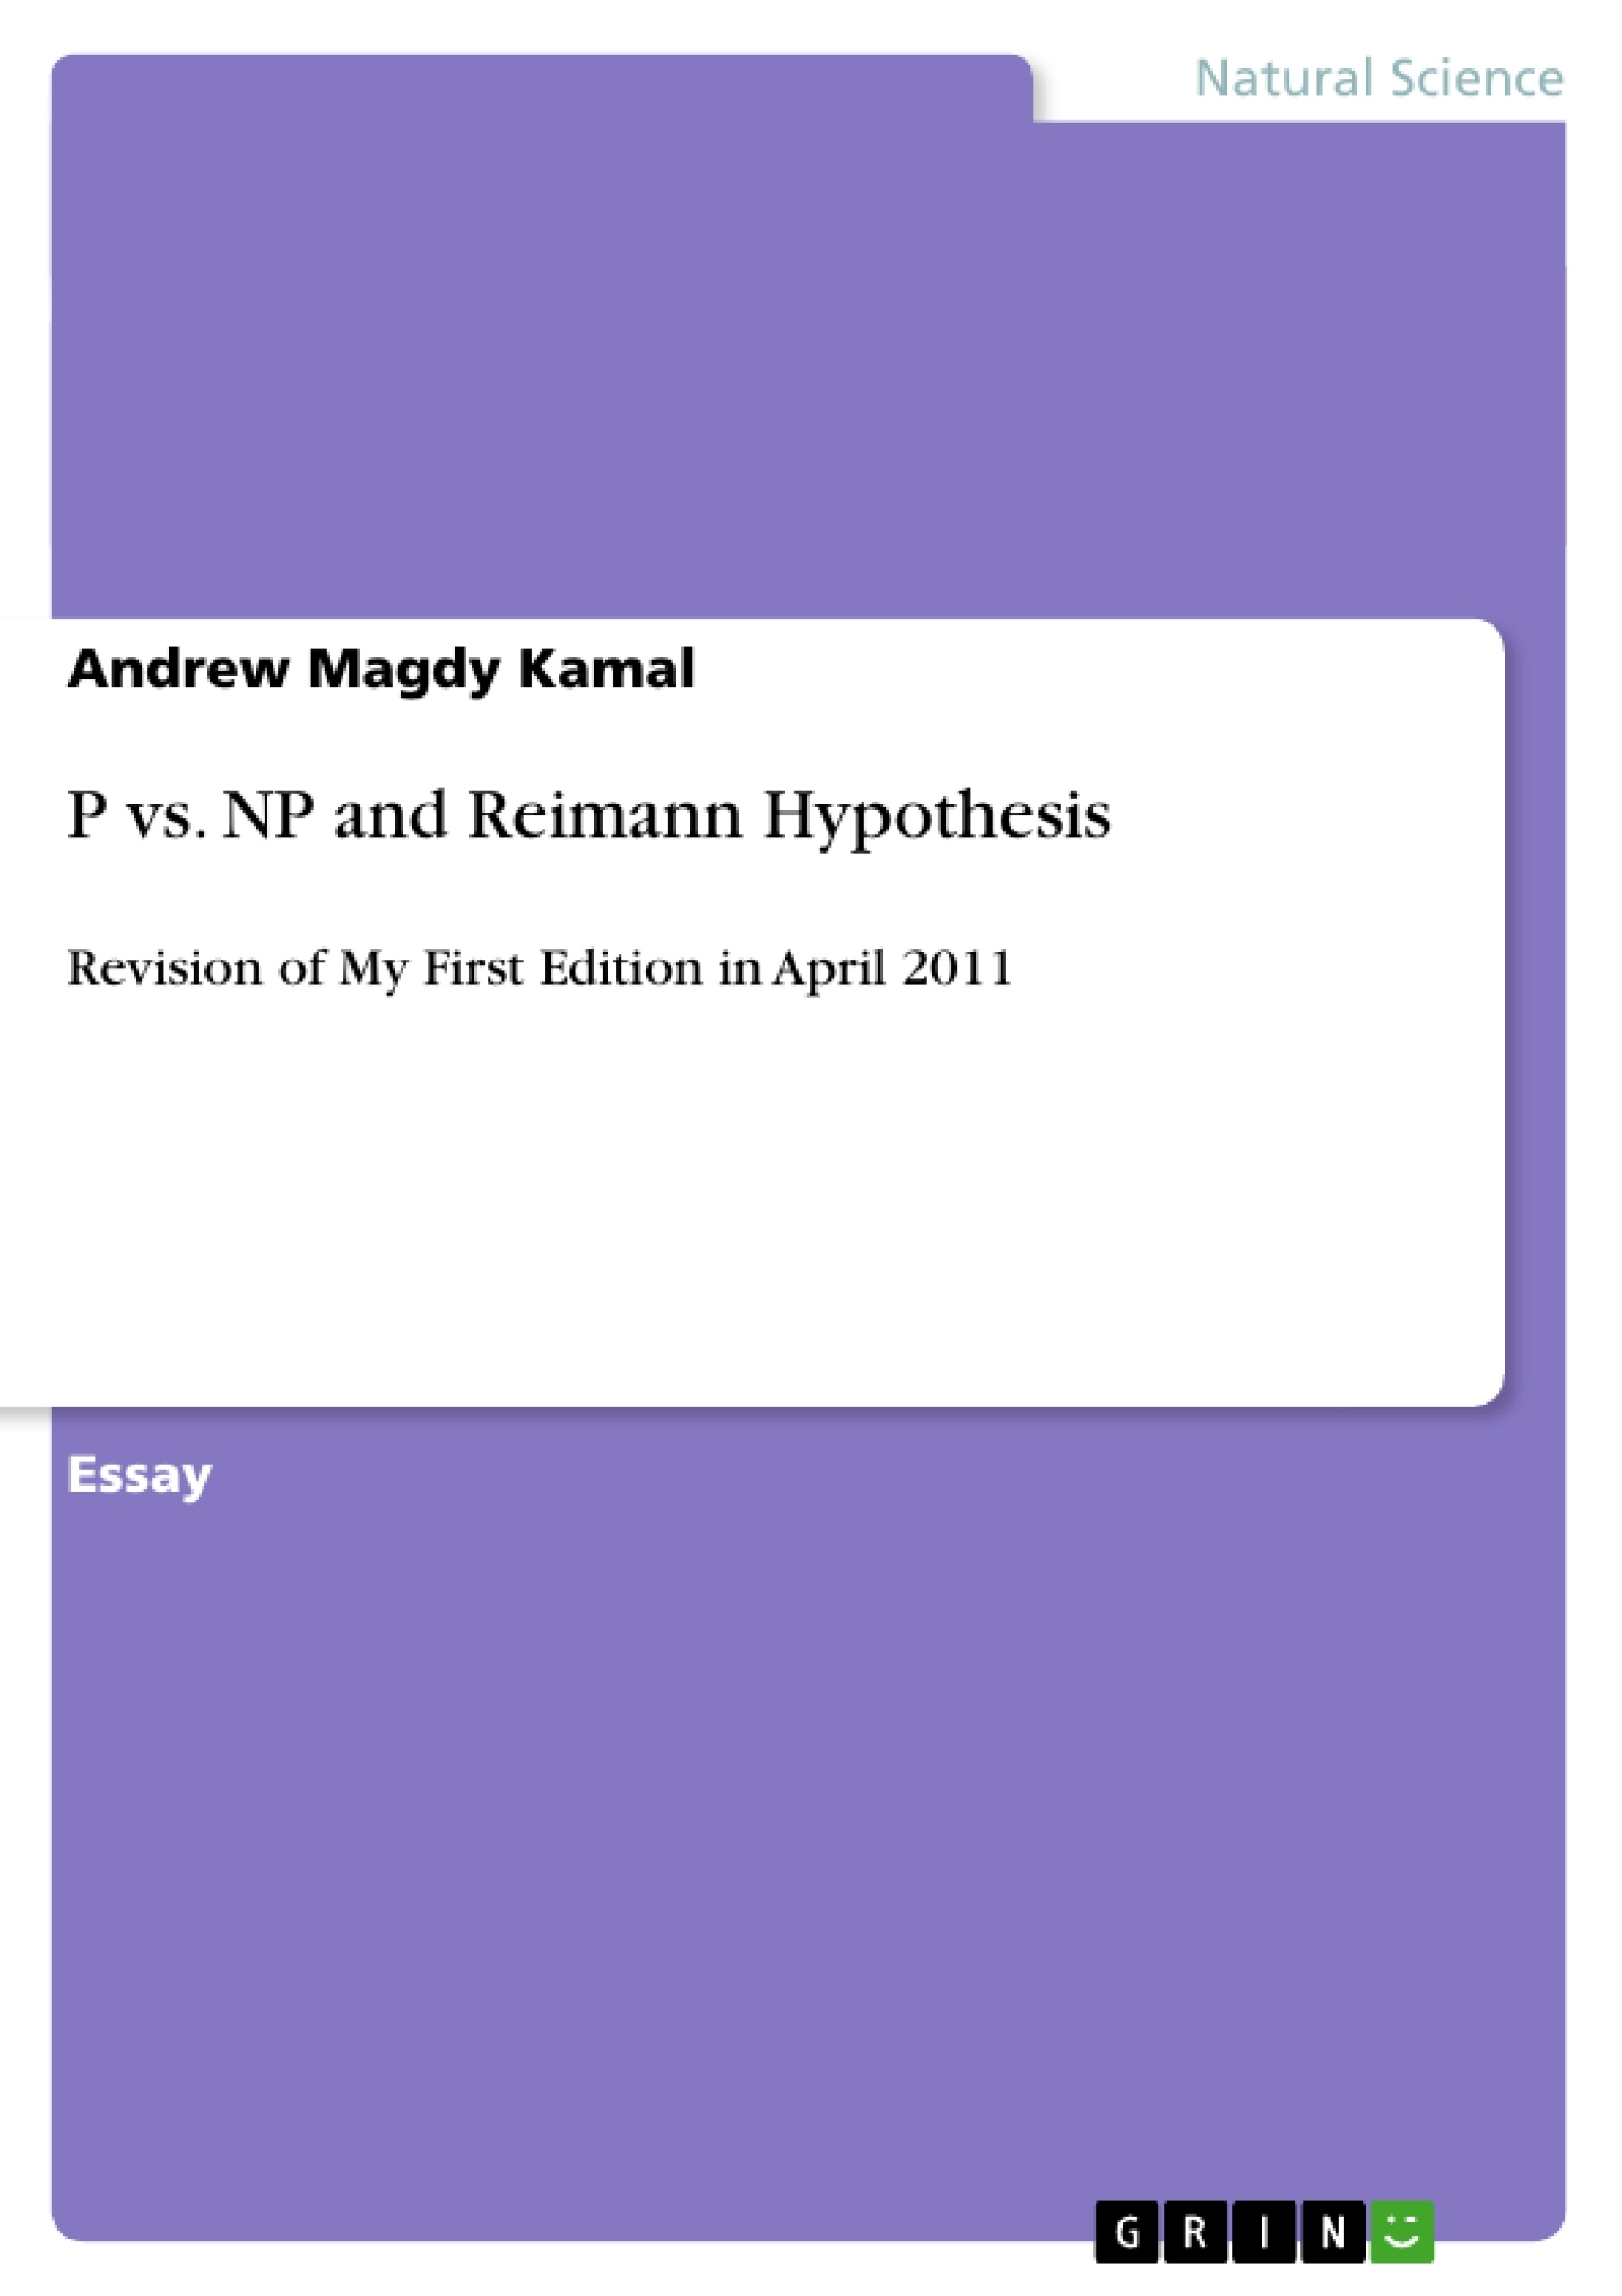 Title: P vs. NP and Reimann Hypothesis